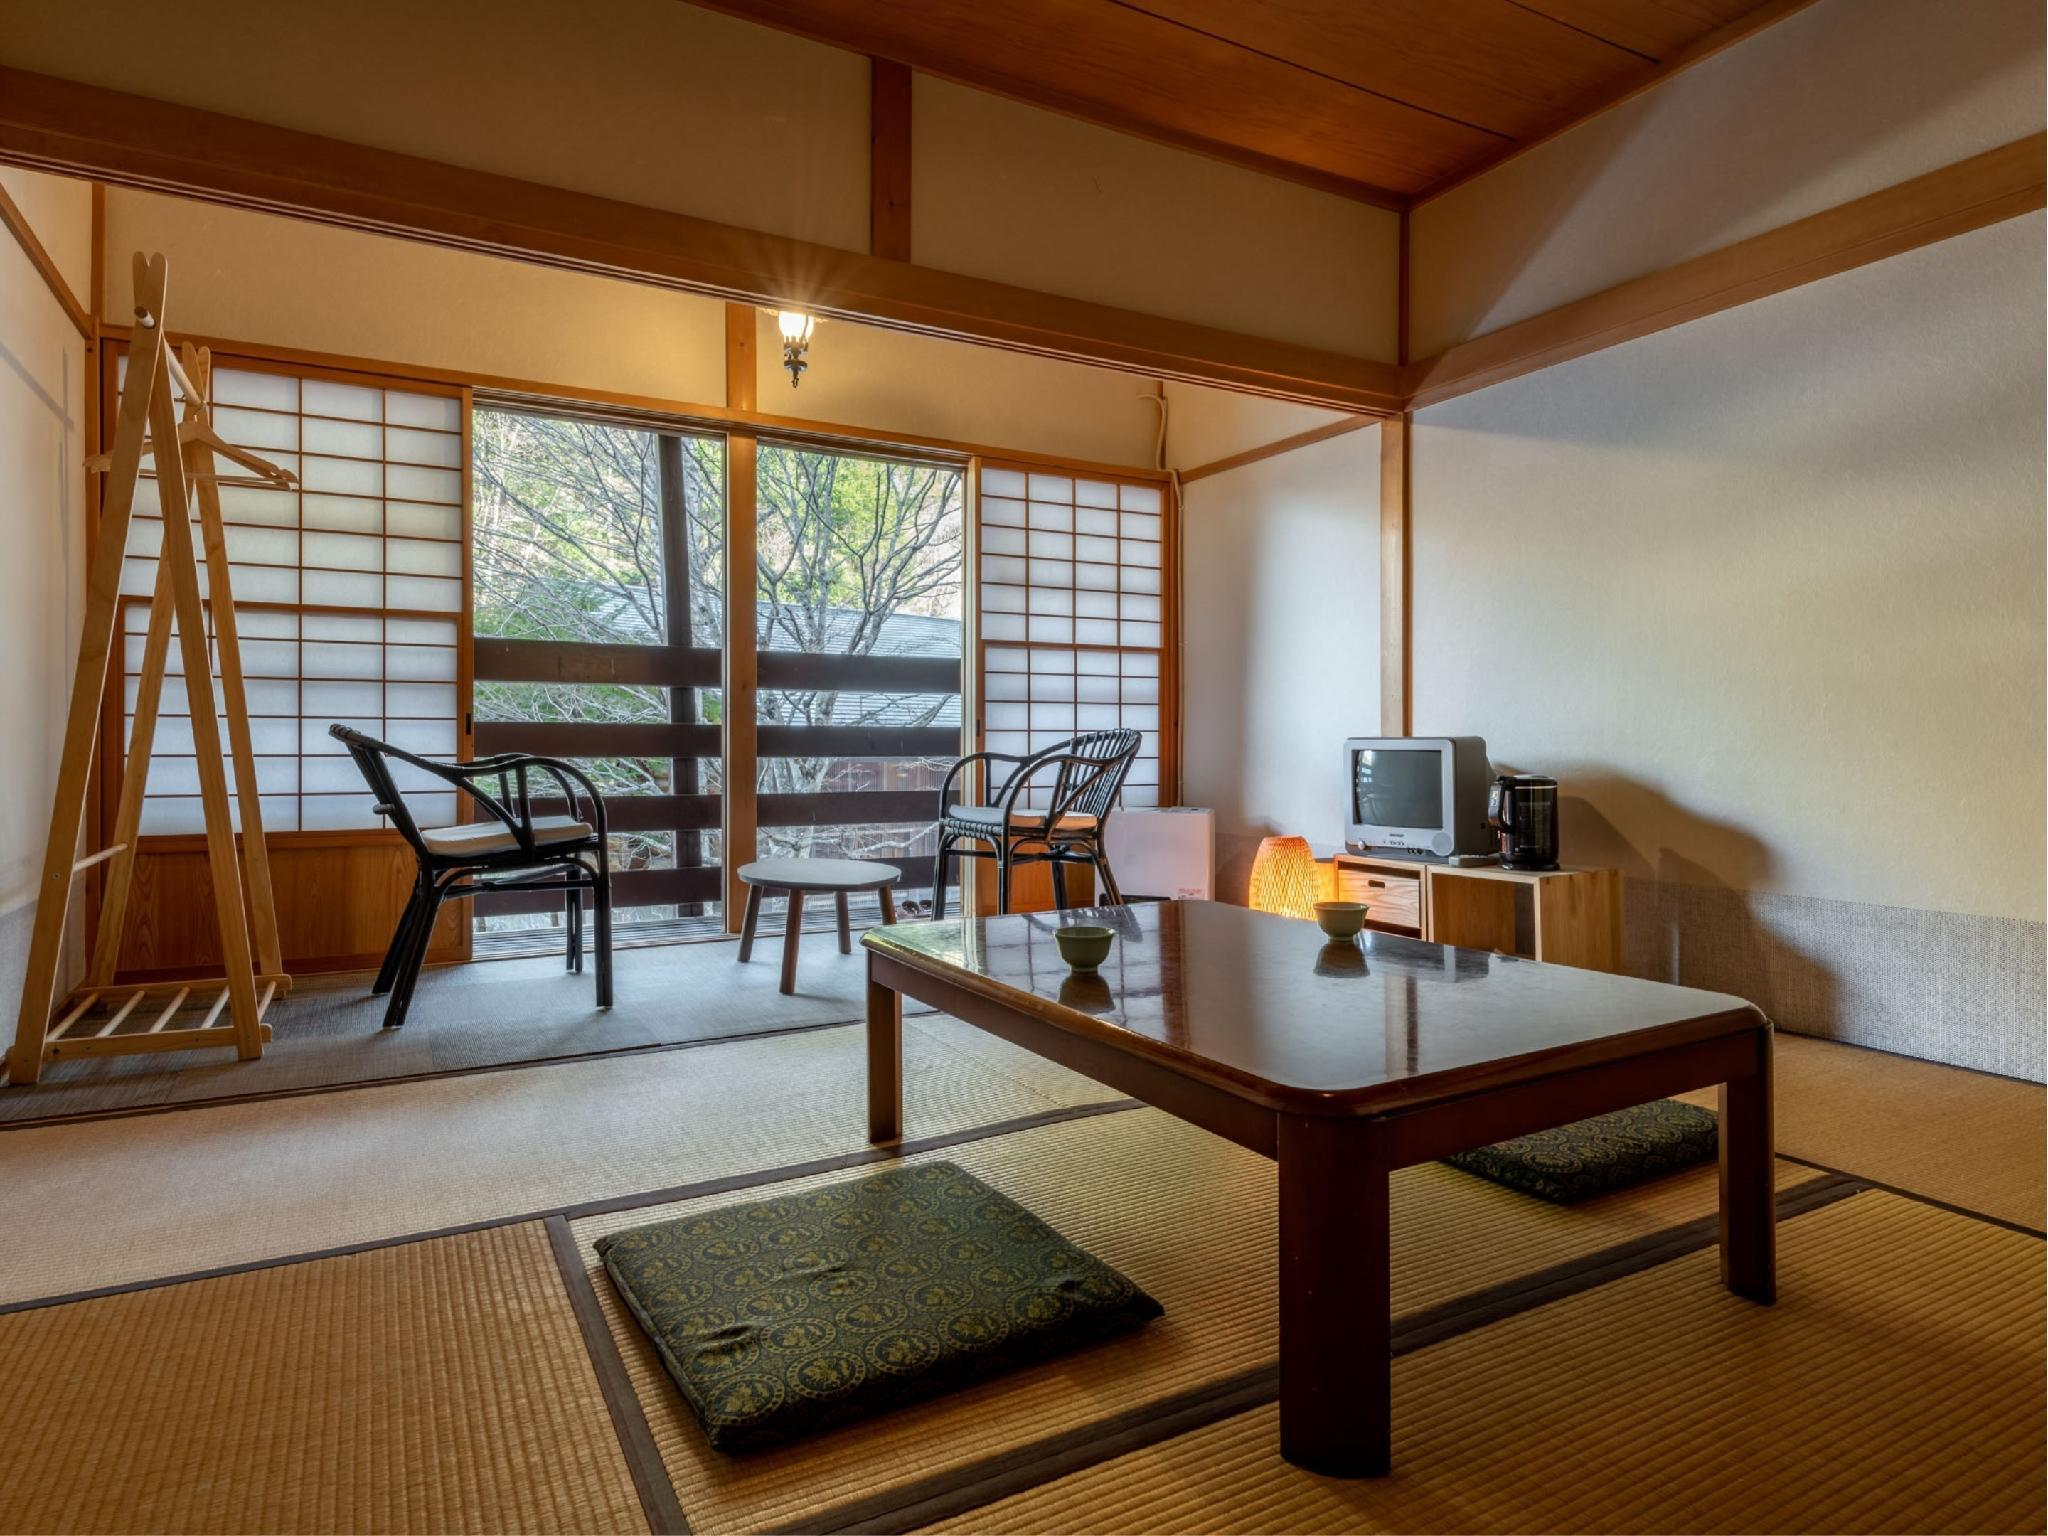 다다미 객실(본관/실내툇마루) (Japanese-style Room with Hiroen Space (Main Building))